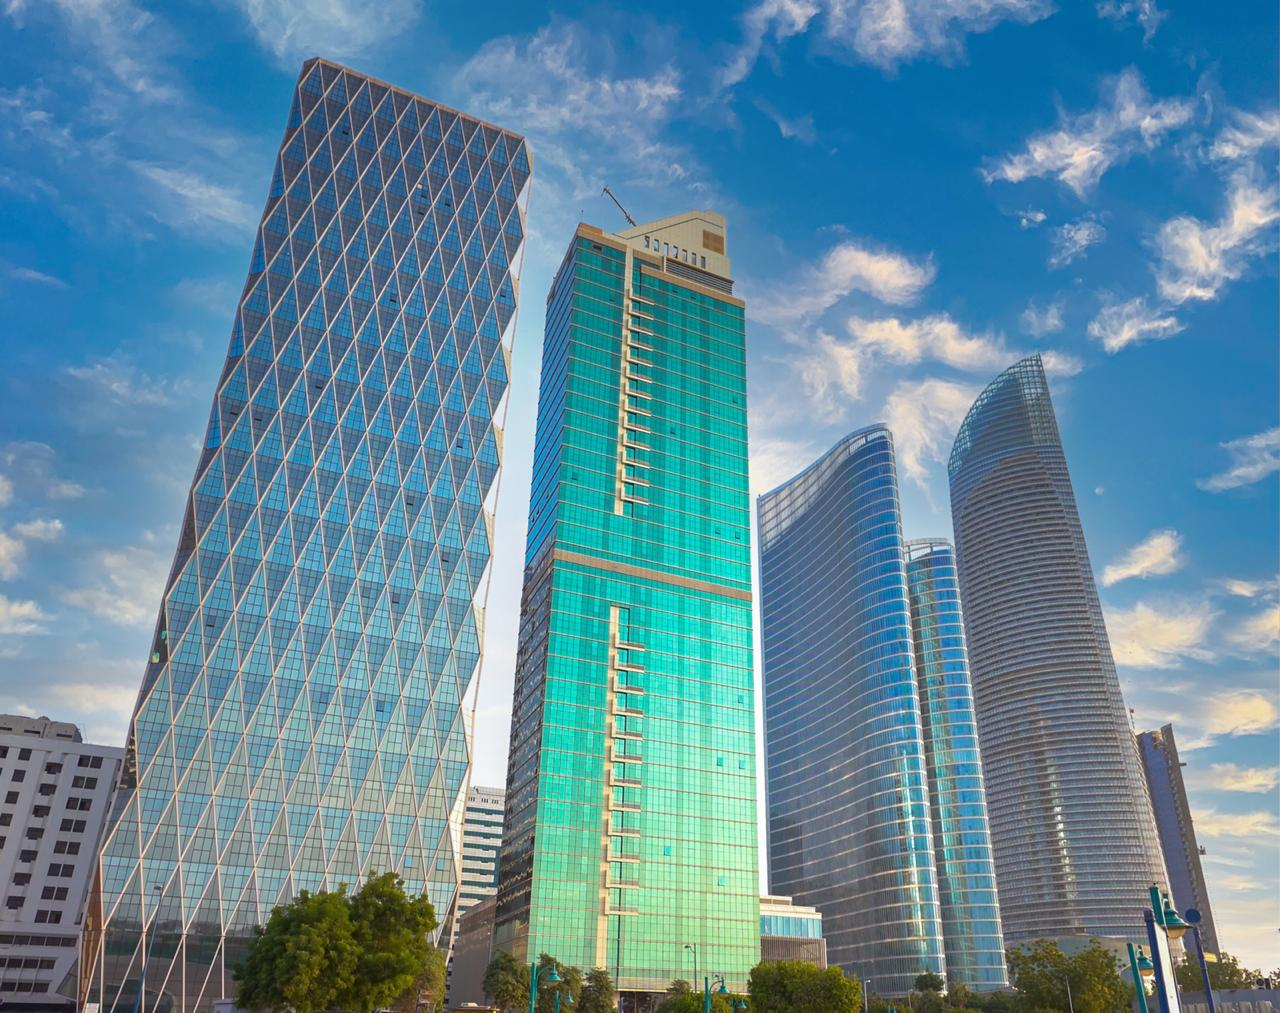 FHS Law Firm » FHS is a full-service law firm headquartered in Abu Dhabi with a global reach and dominant presence in UAE.